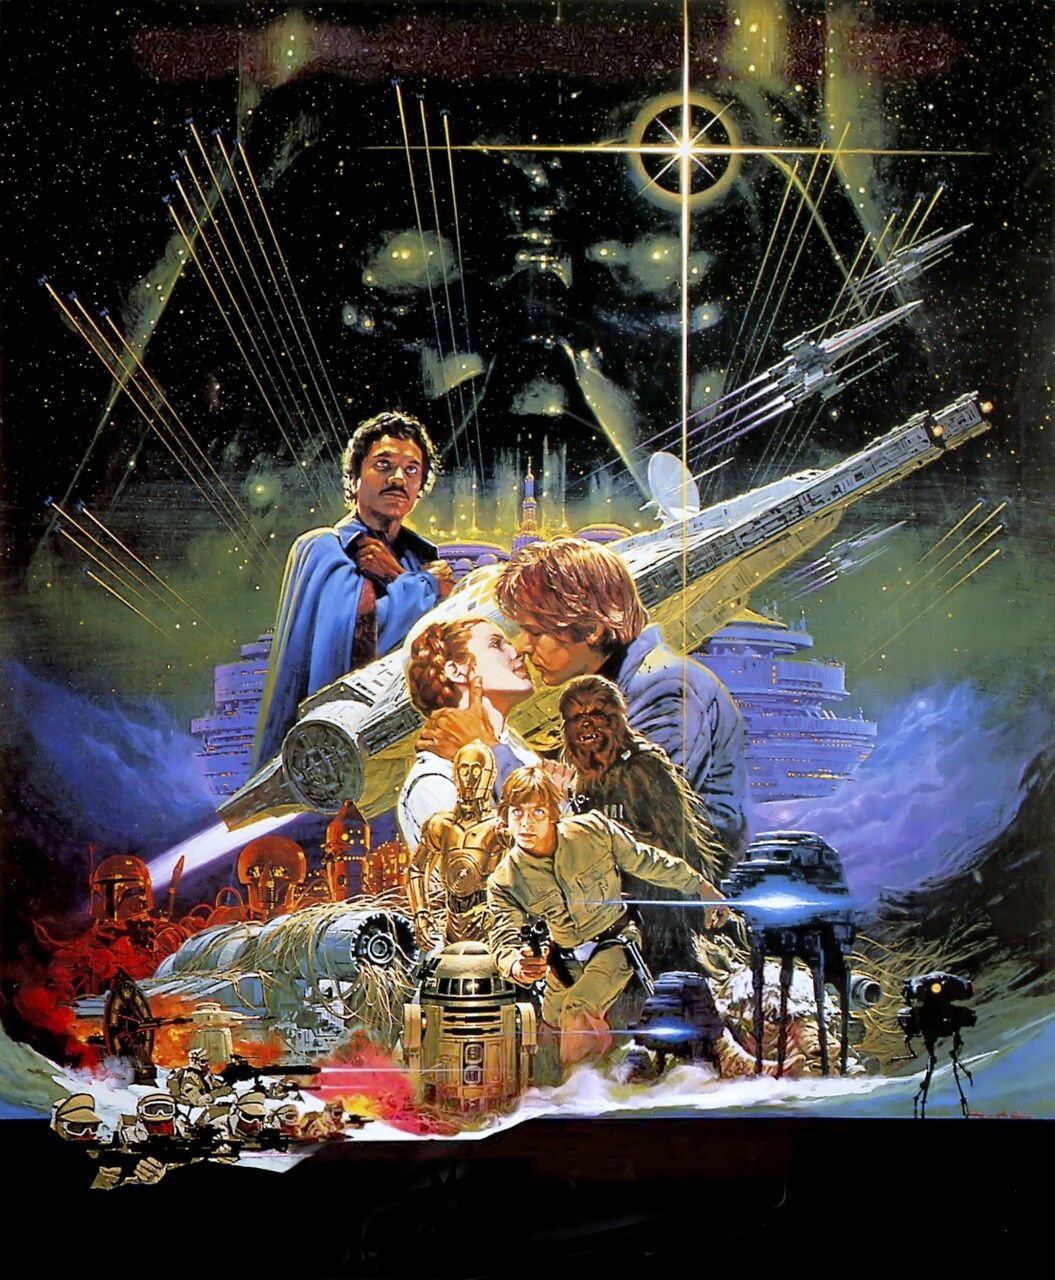 Star Wars art by Japanese illustrator, Noriyoshi Ohrai. (He did that skeletal soldiers image I posted a few days ago.) His international poster for The Empire Strikes Back unfortunately was before my time—my local cinema had a habit of showcasing movie posters in a lavish way, and that one would have been a sight to see for sure.